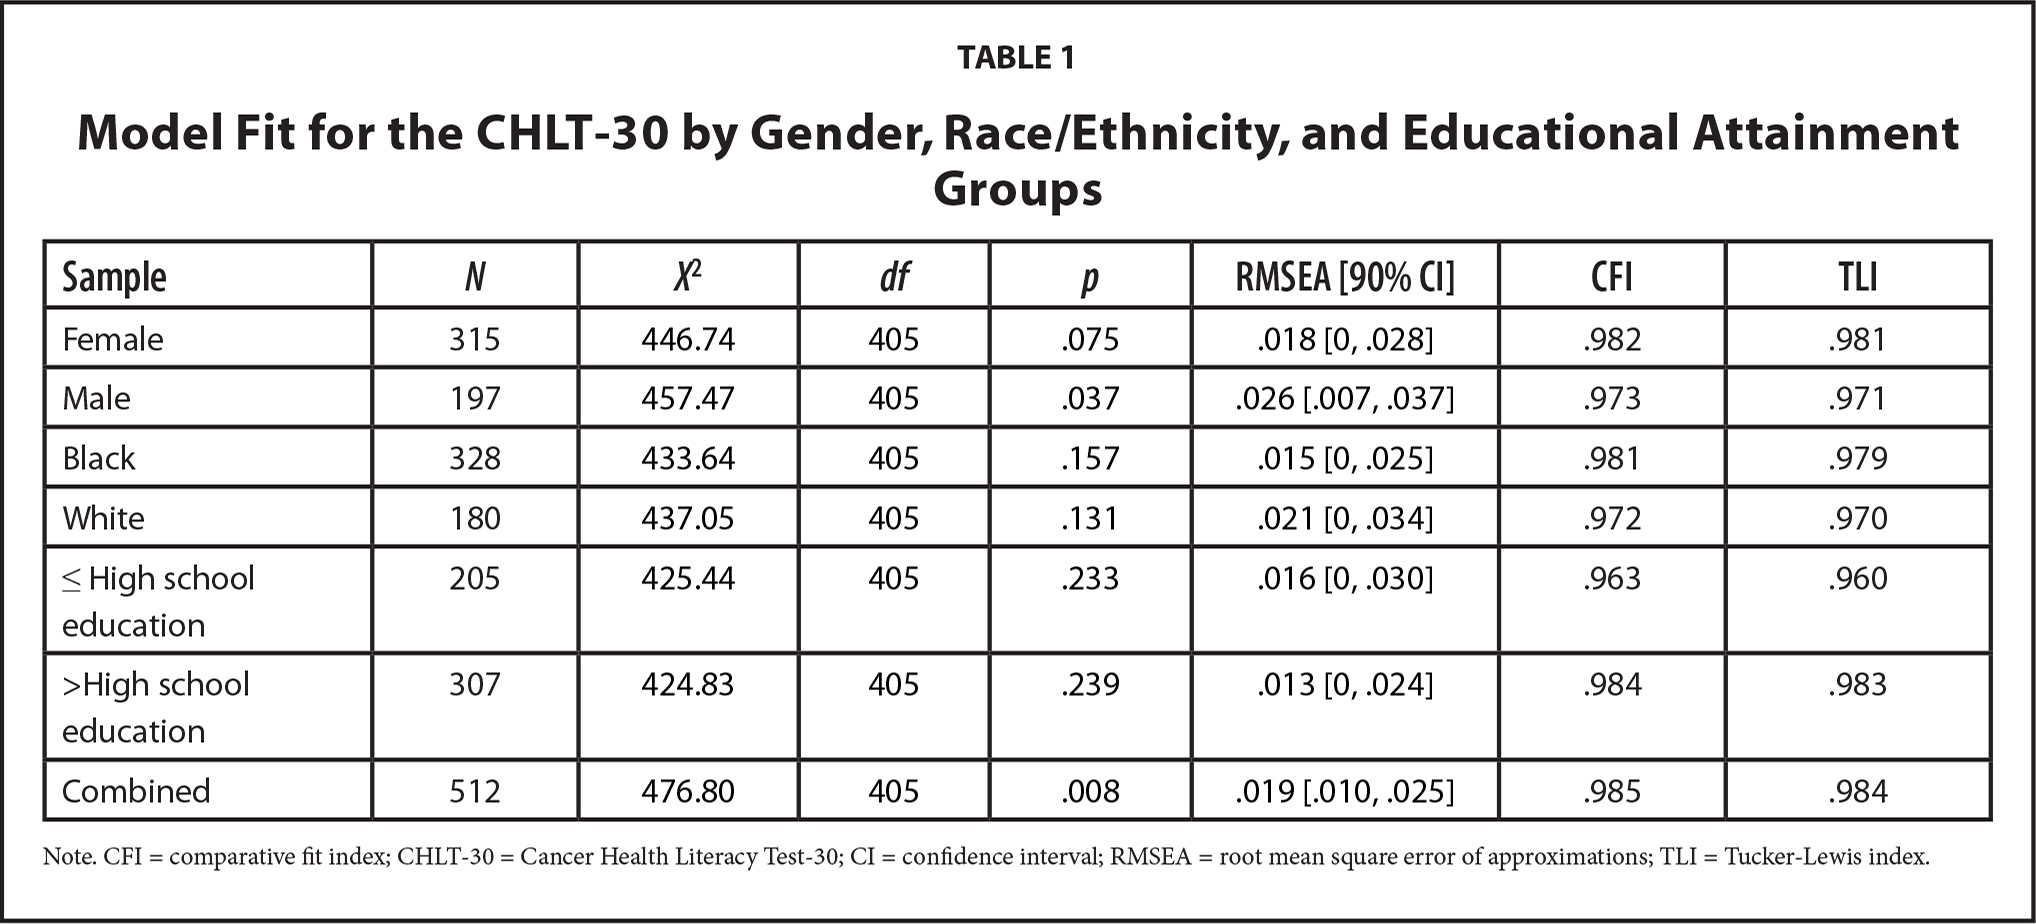 Model Fit for the CHLT-30 by Gender, Race/Ethnicity, and Educational Attainment Groups